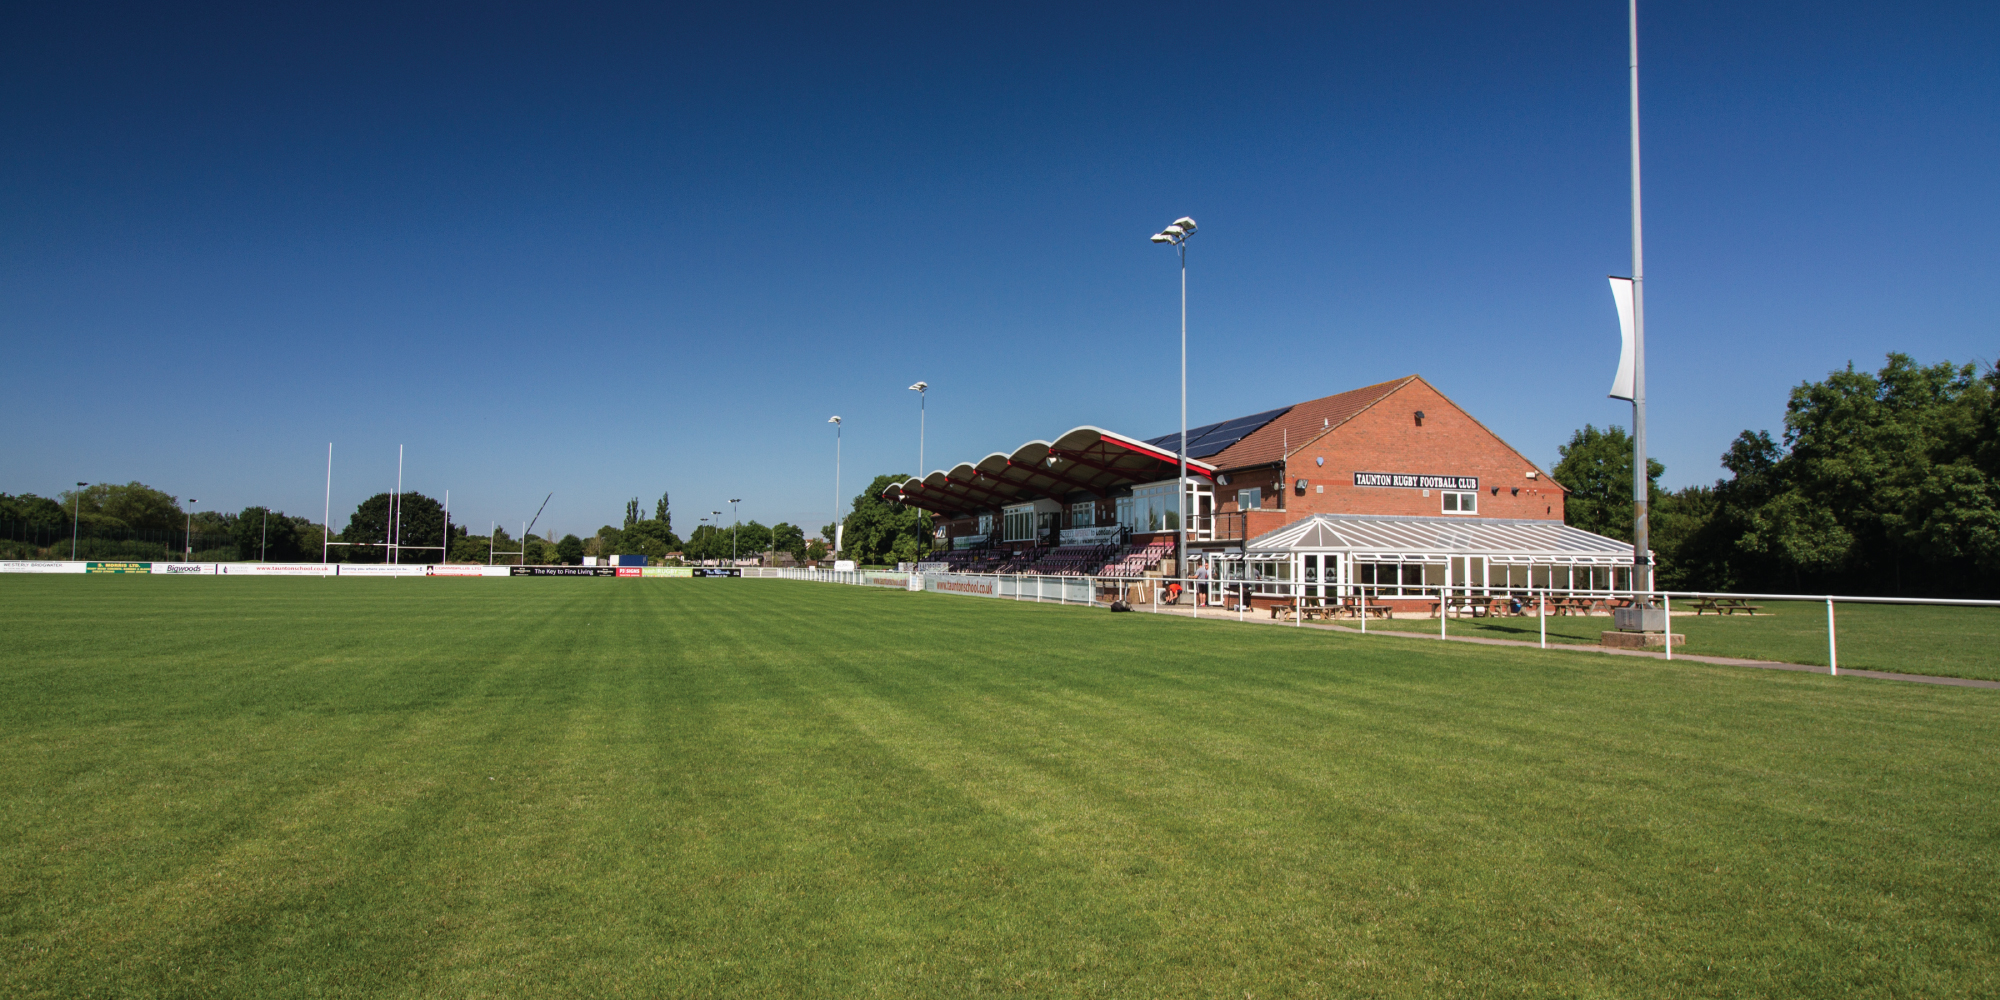 The clubhouse at Taunton Rugby Club